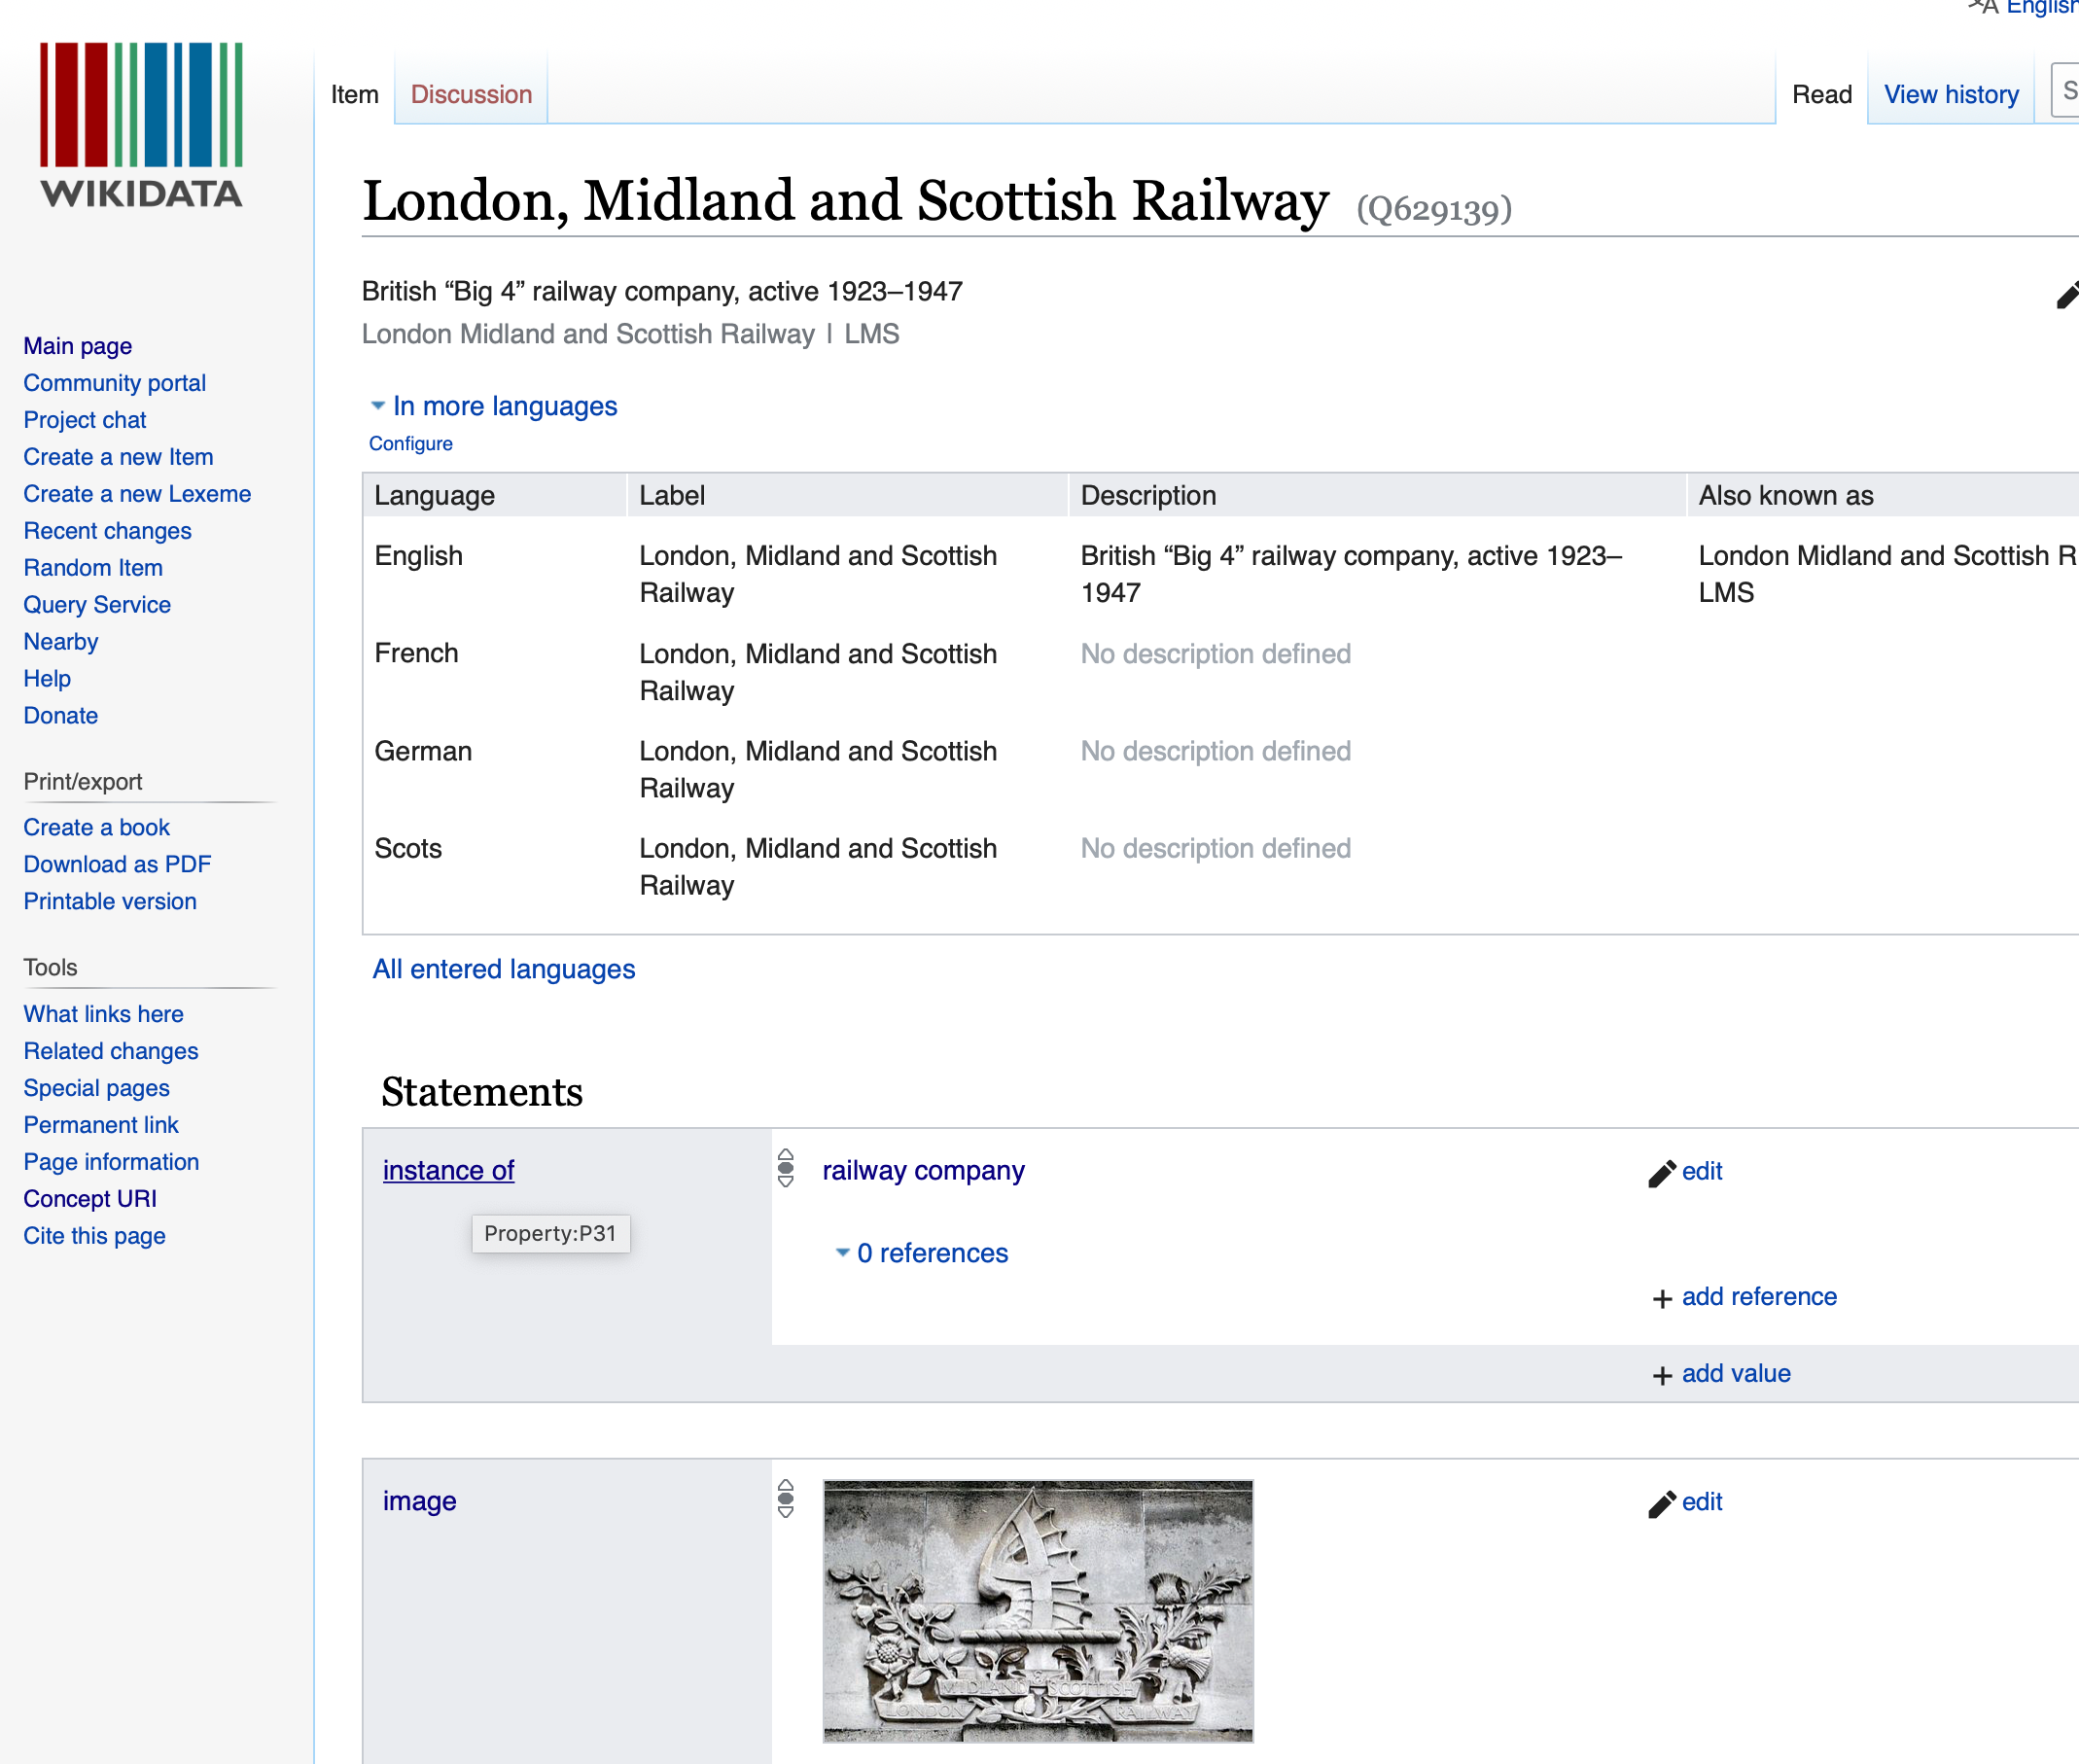 Screen grab of the Wikidata page for LMSR